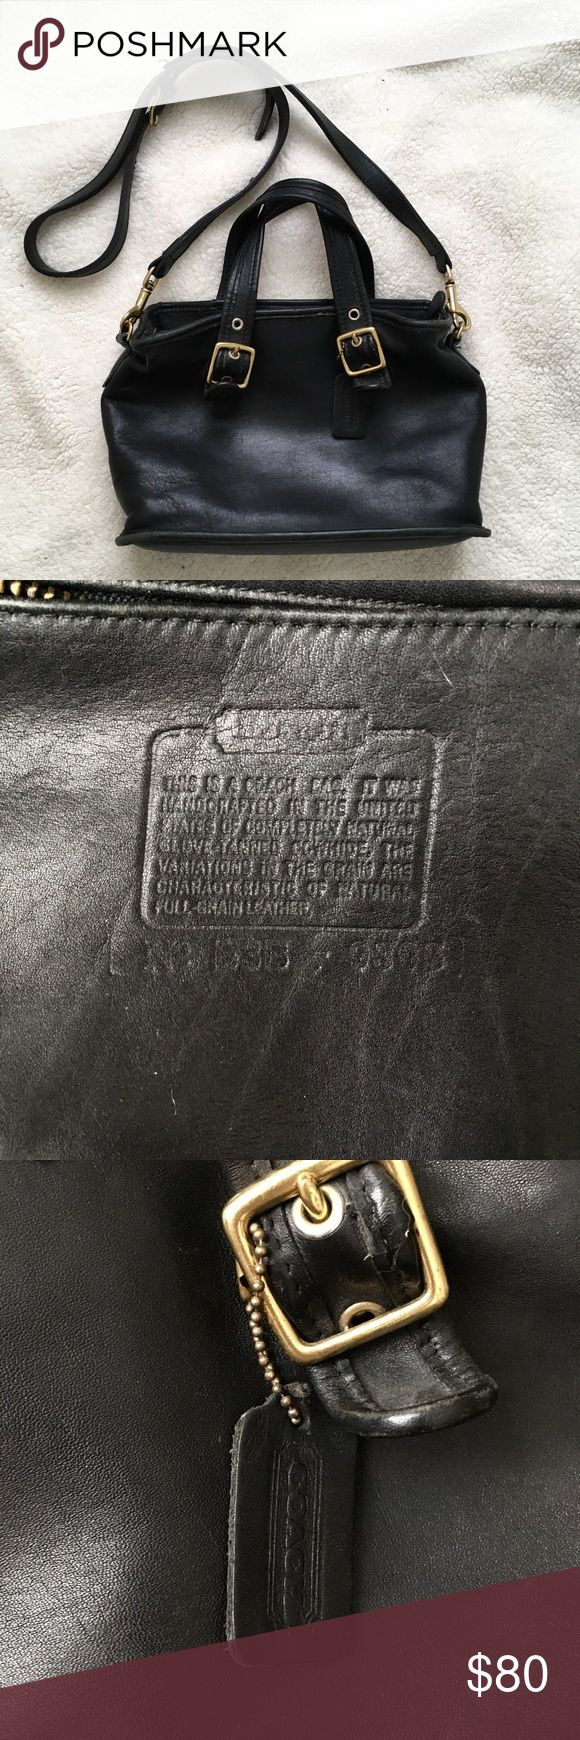 Vintage Coach Legacy Satchel Vintage condition black leather small Legacy Satchel. Gorgeous bag, a few signs of wear. Needs a good home! Coach Bags Satchels